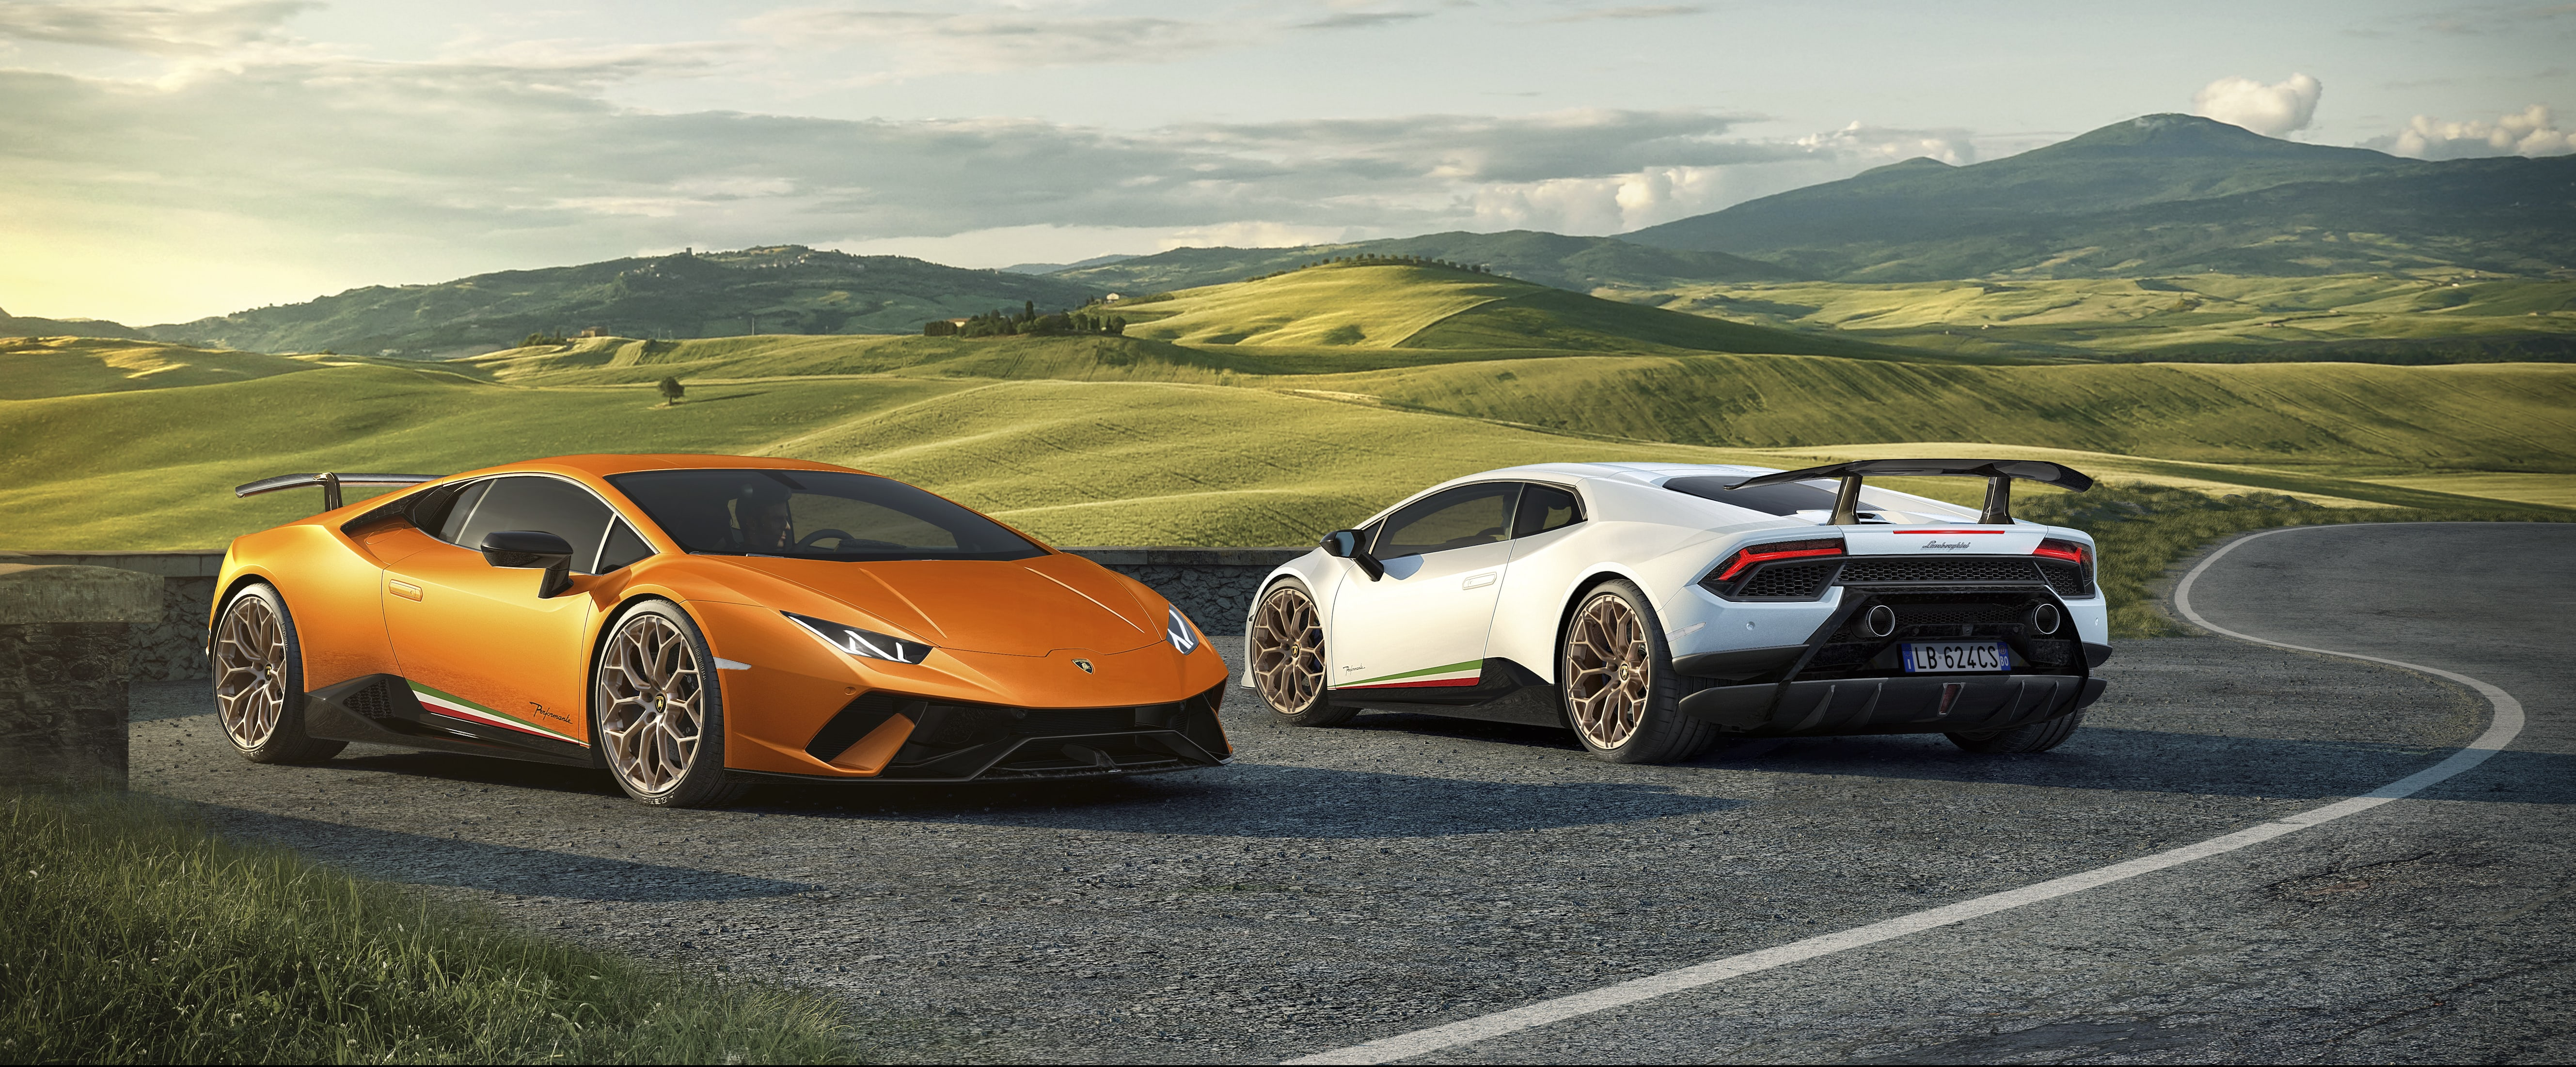 nuova lamborghini hurac n performante prezzo caratteristiche e data uscita foto circuito motori. Black Bedroom Furniture Sets. Home Design Ideas